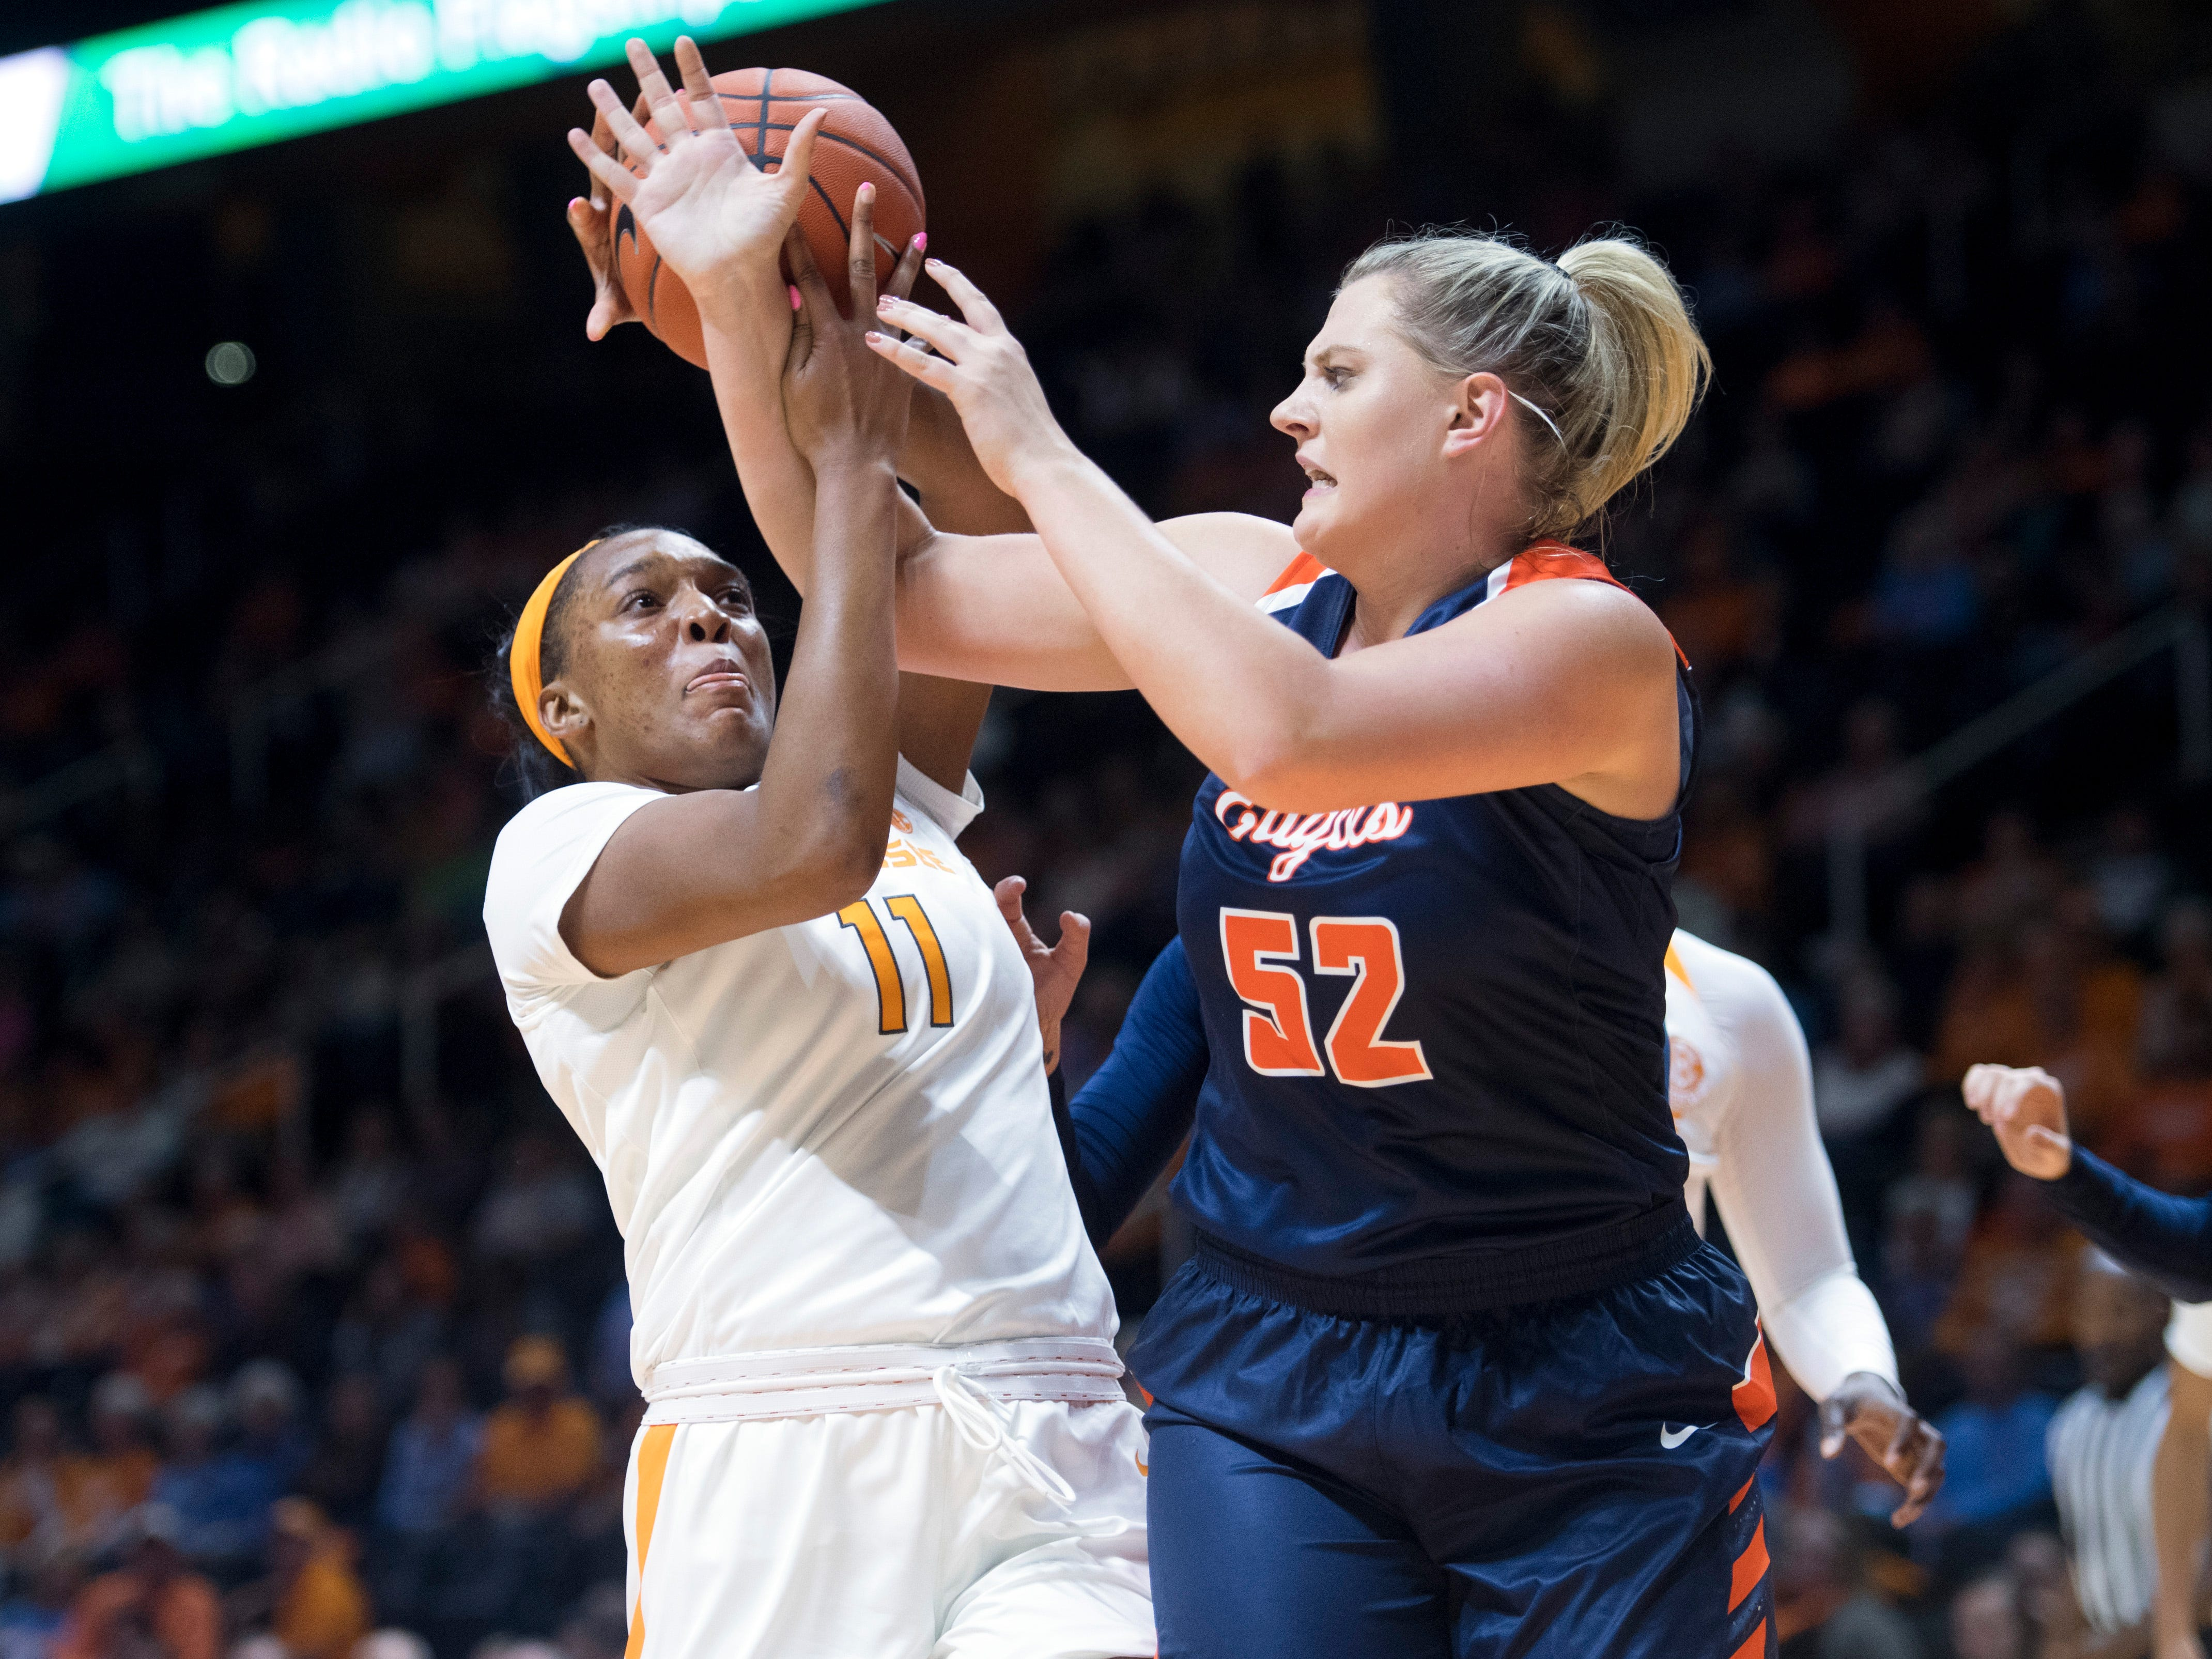 Tennessee's Kasiyahna Kushkituah and Carson-Newman's Sydney Pearce fight for a rebound during an exhibition game at Thompson-Boling Arena on Monday, November 5, 2018.